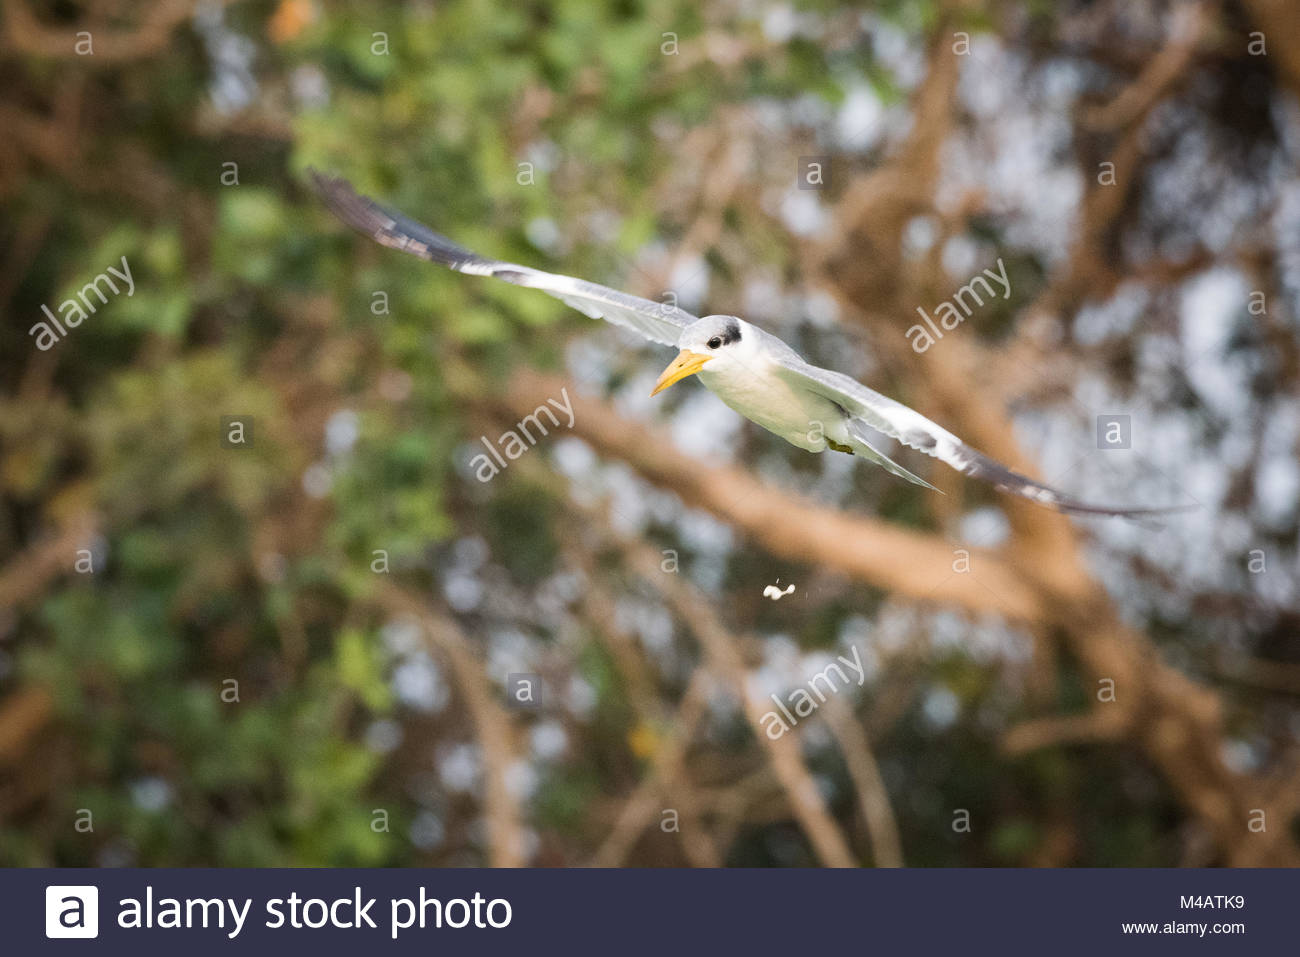 Yellow-billed tern with bird droppings in mid-air - Stock Image